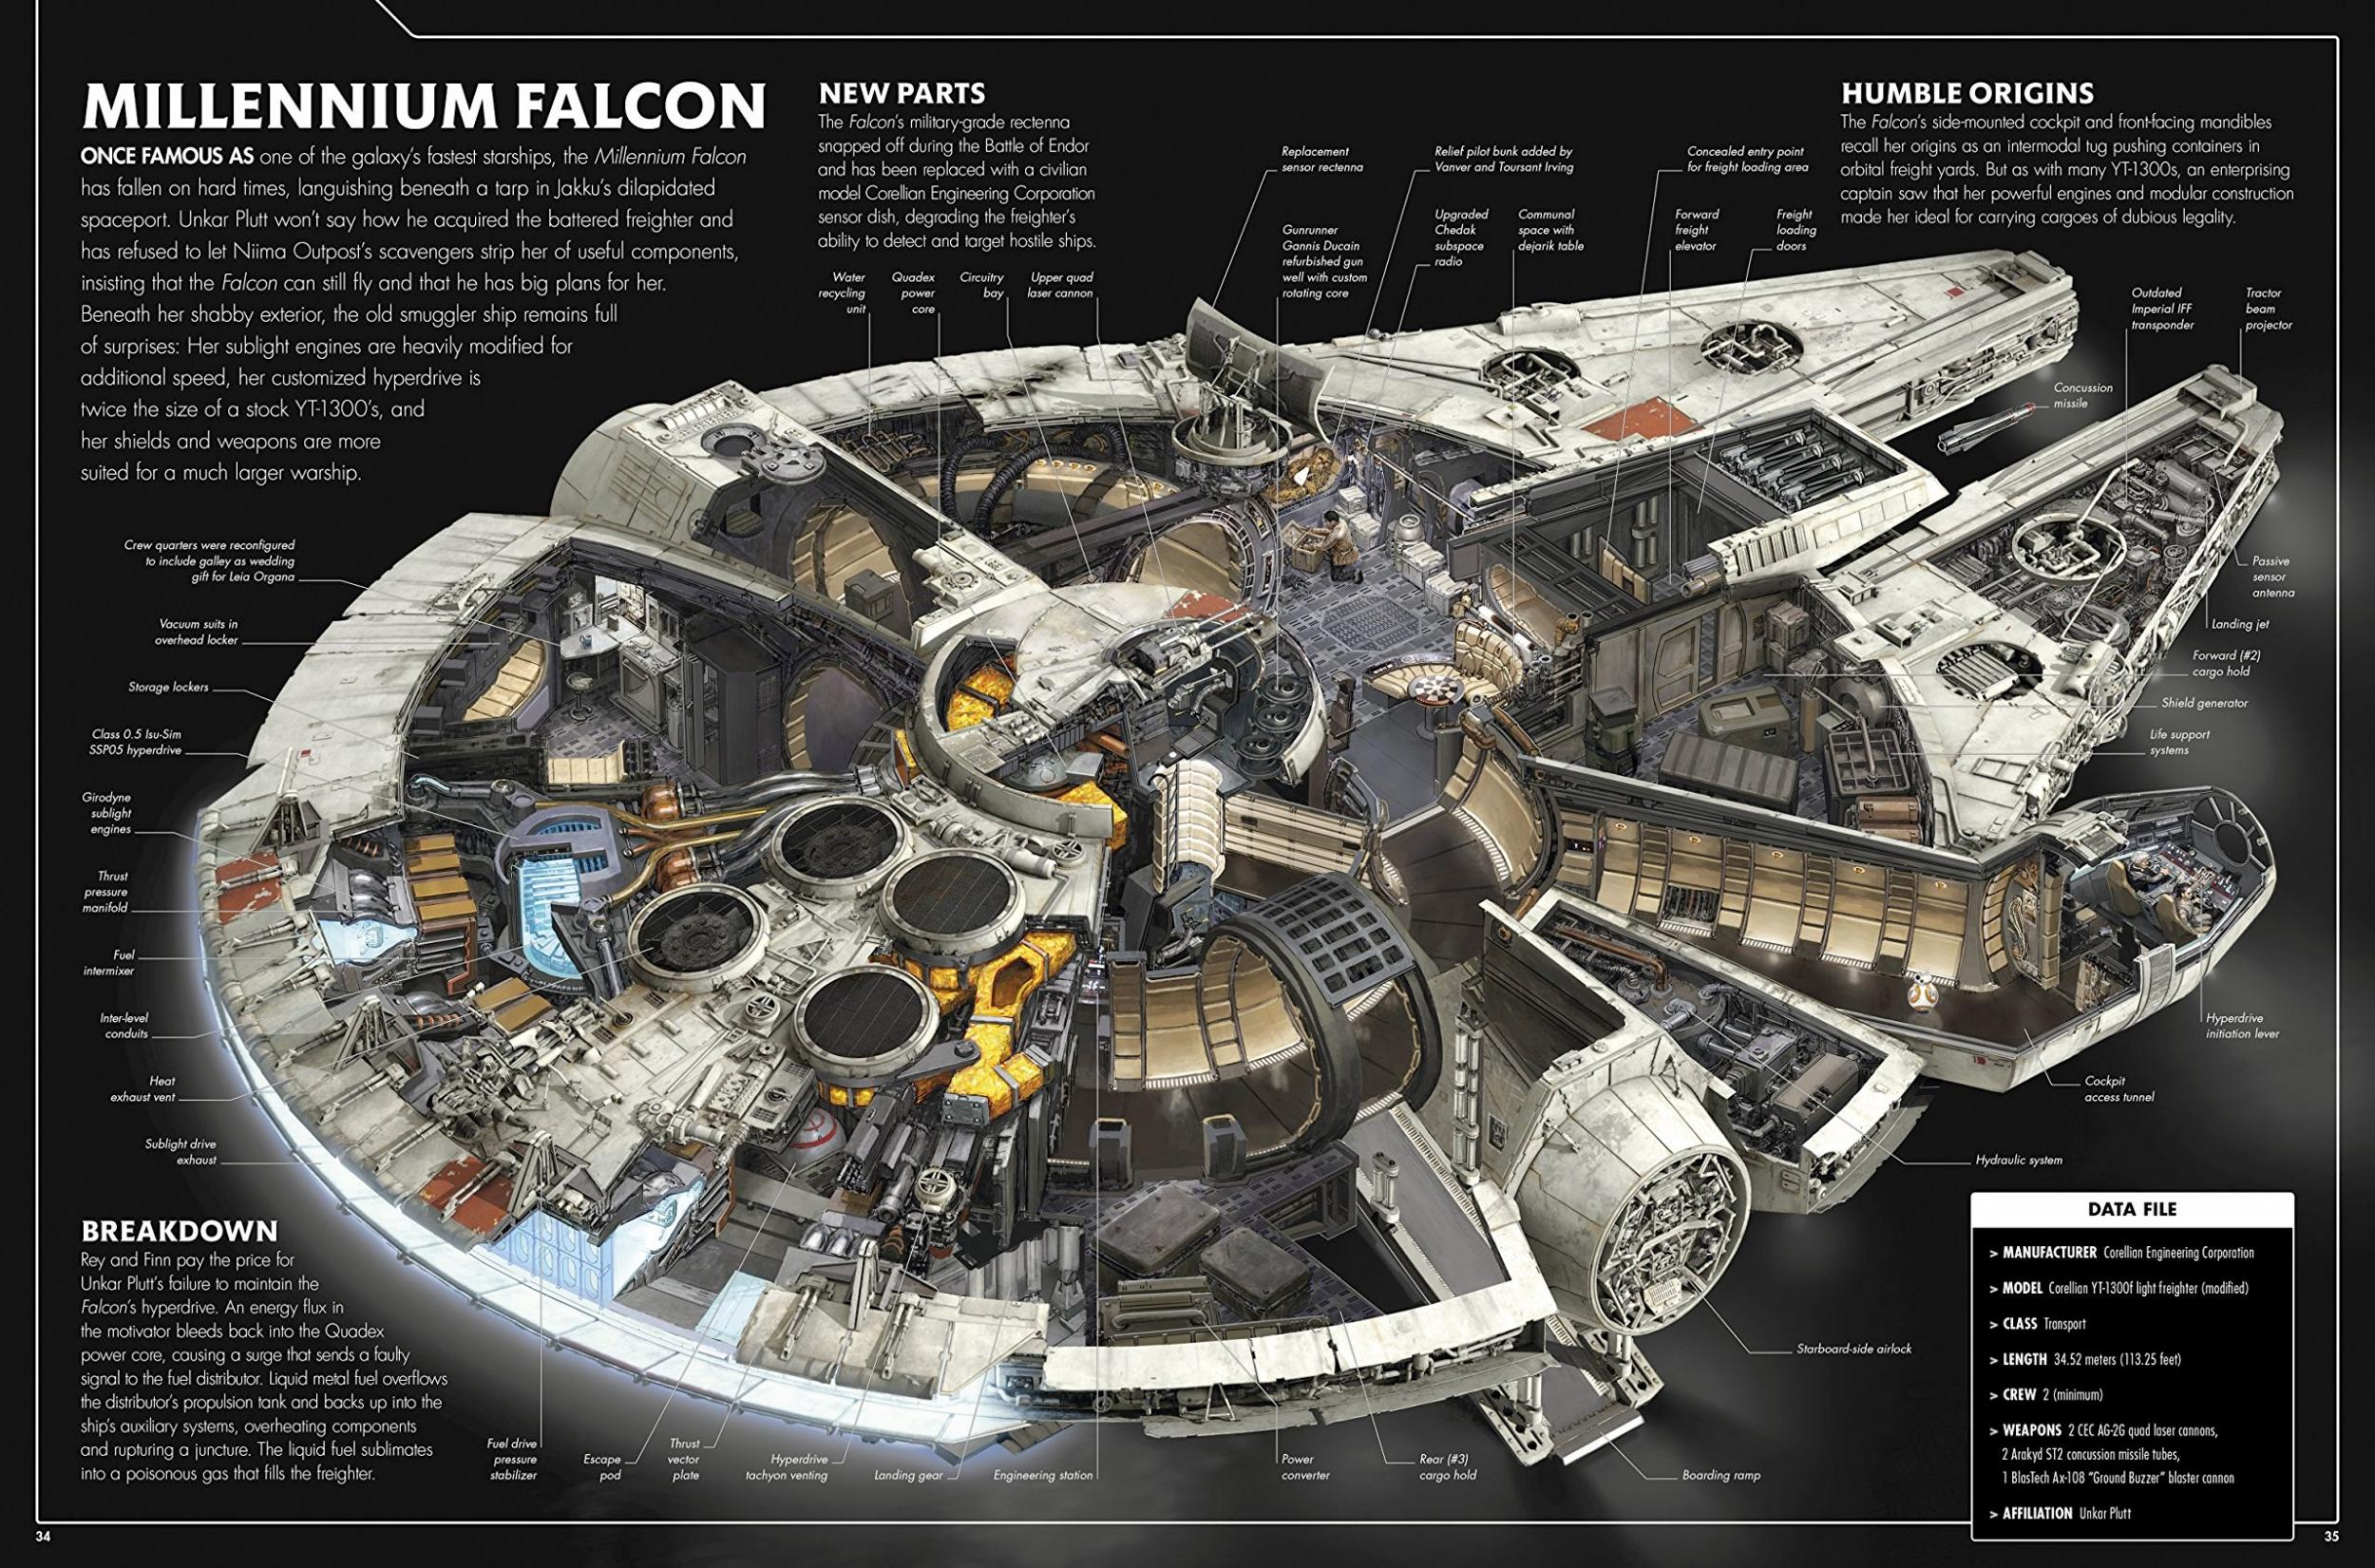 han solo built leia a kitchen on the millennium falcon